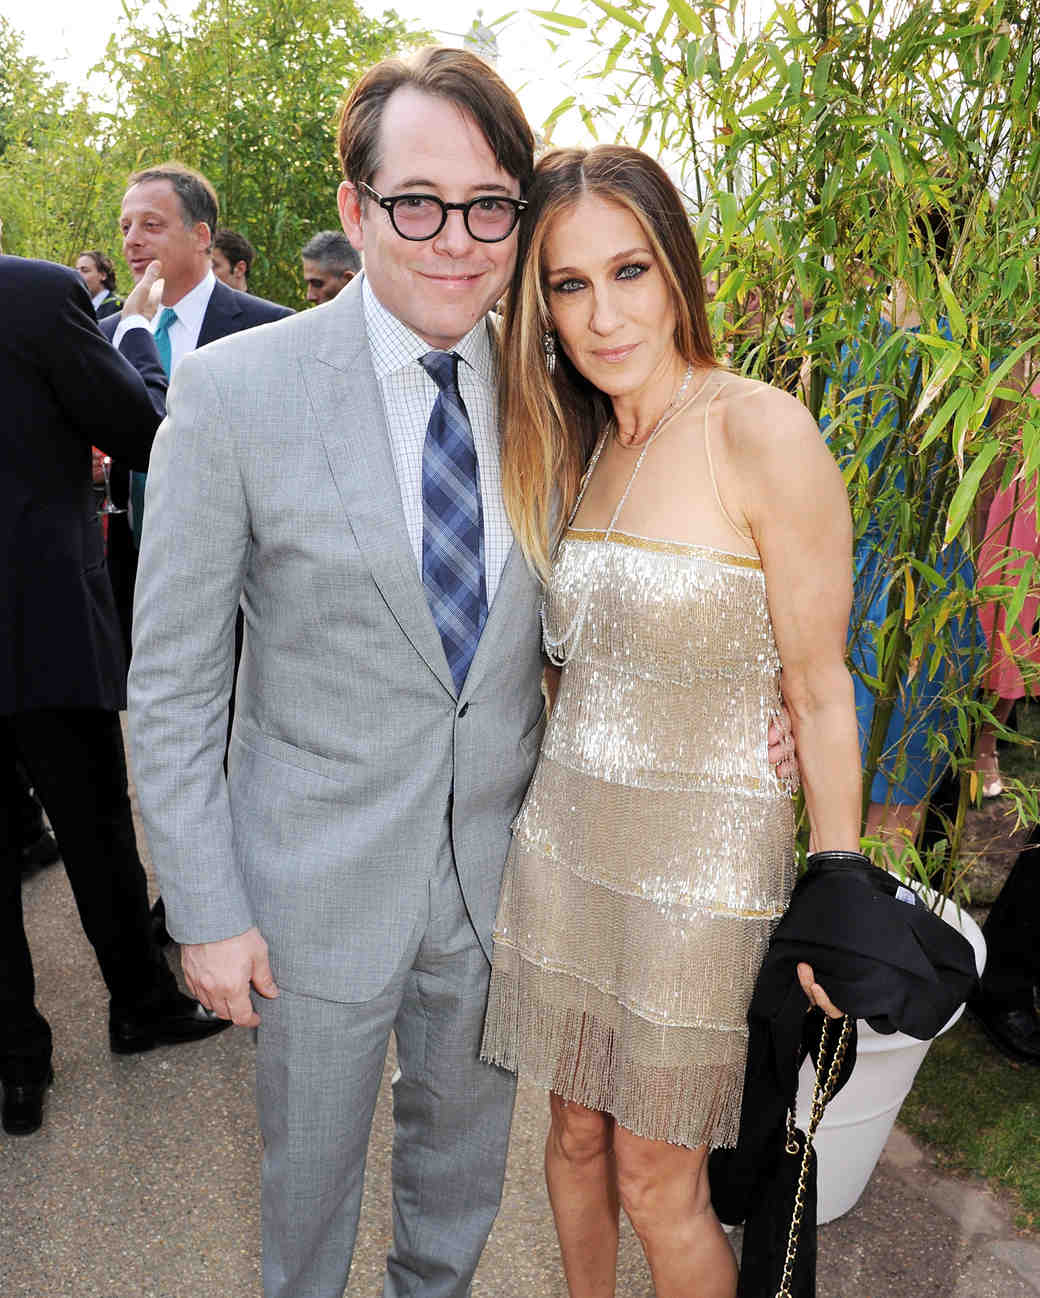 19 Things You Didn't Know About Sarah Jessica Parker and Matthew Broderick